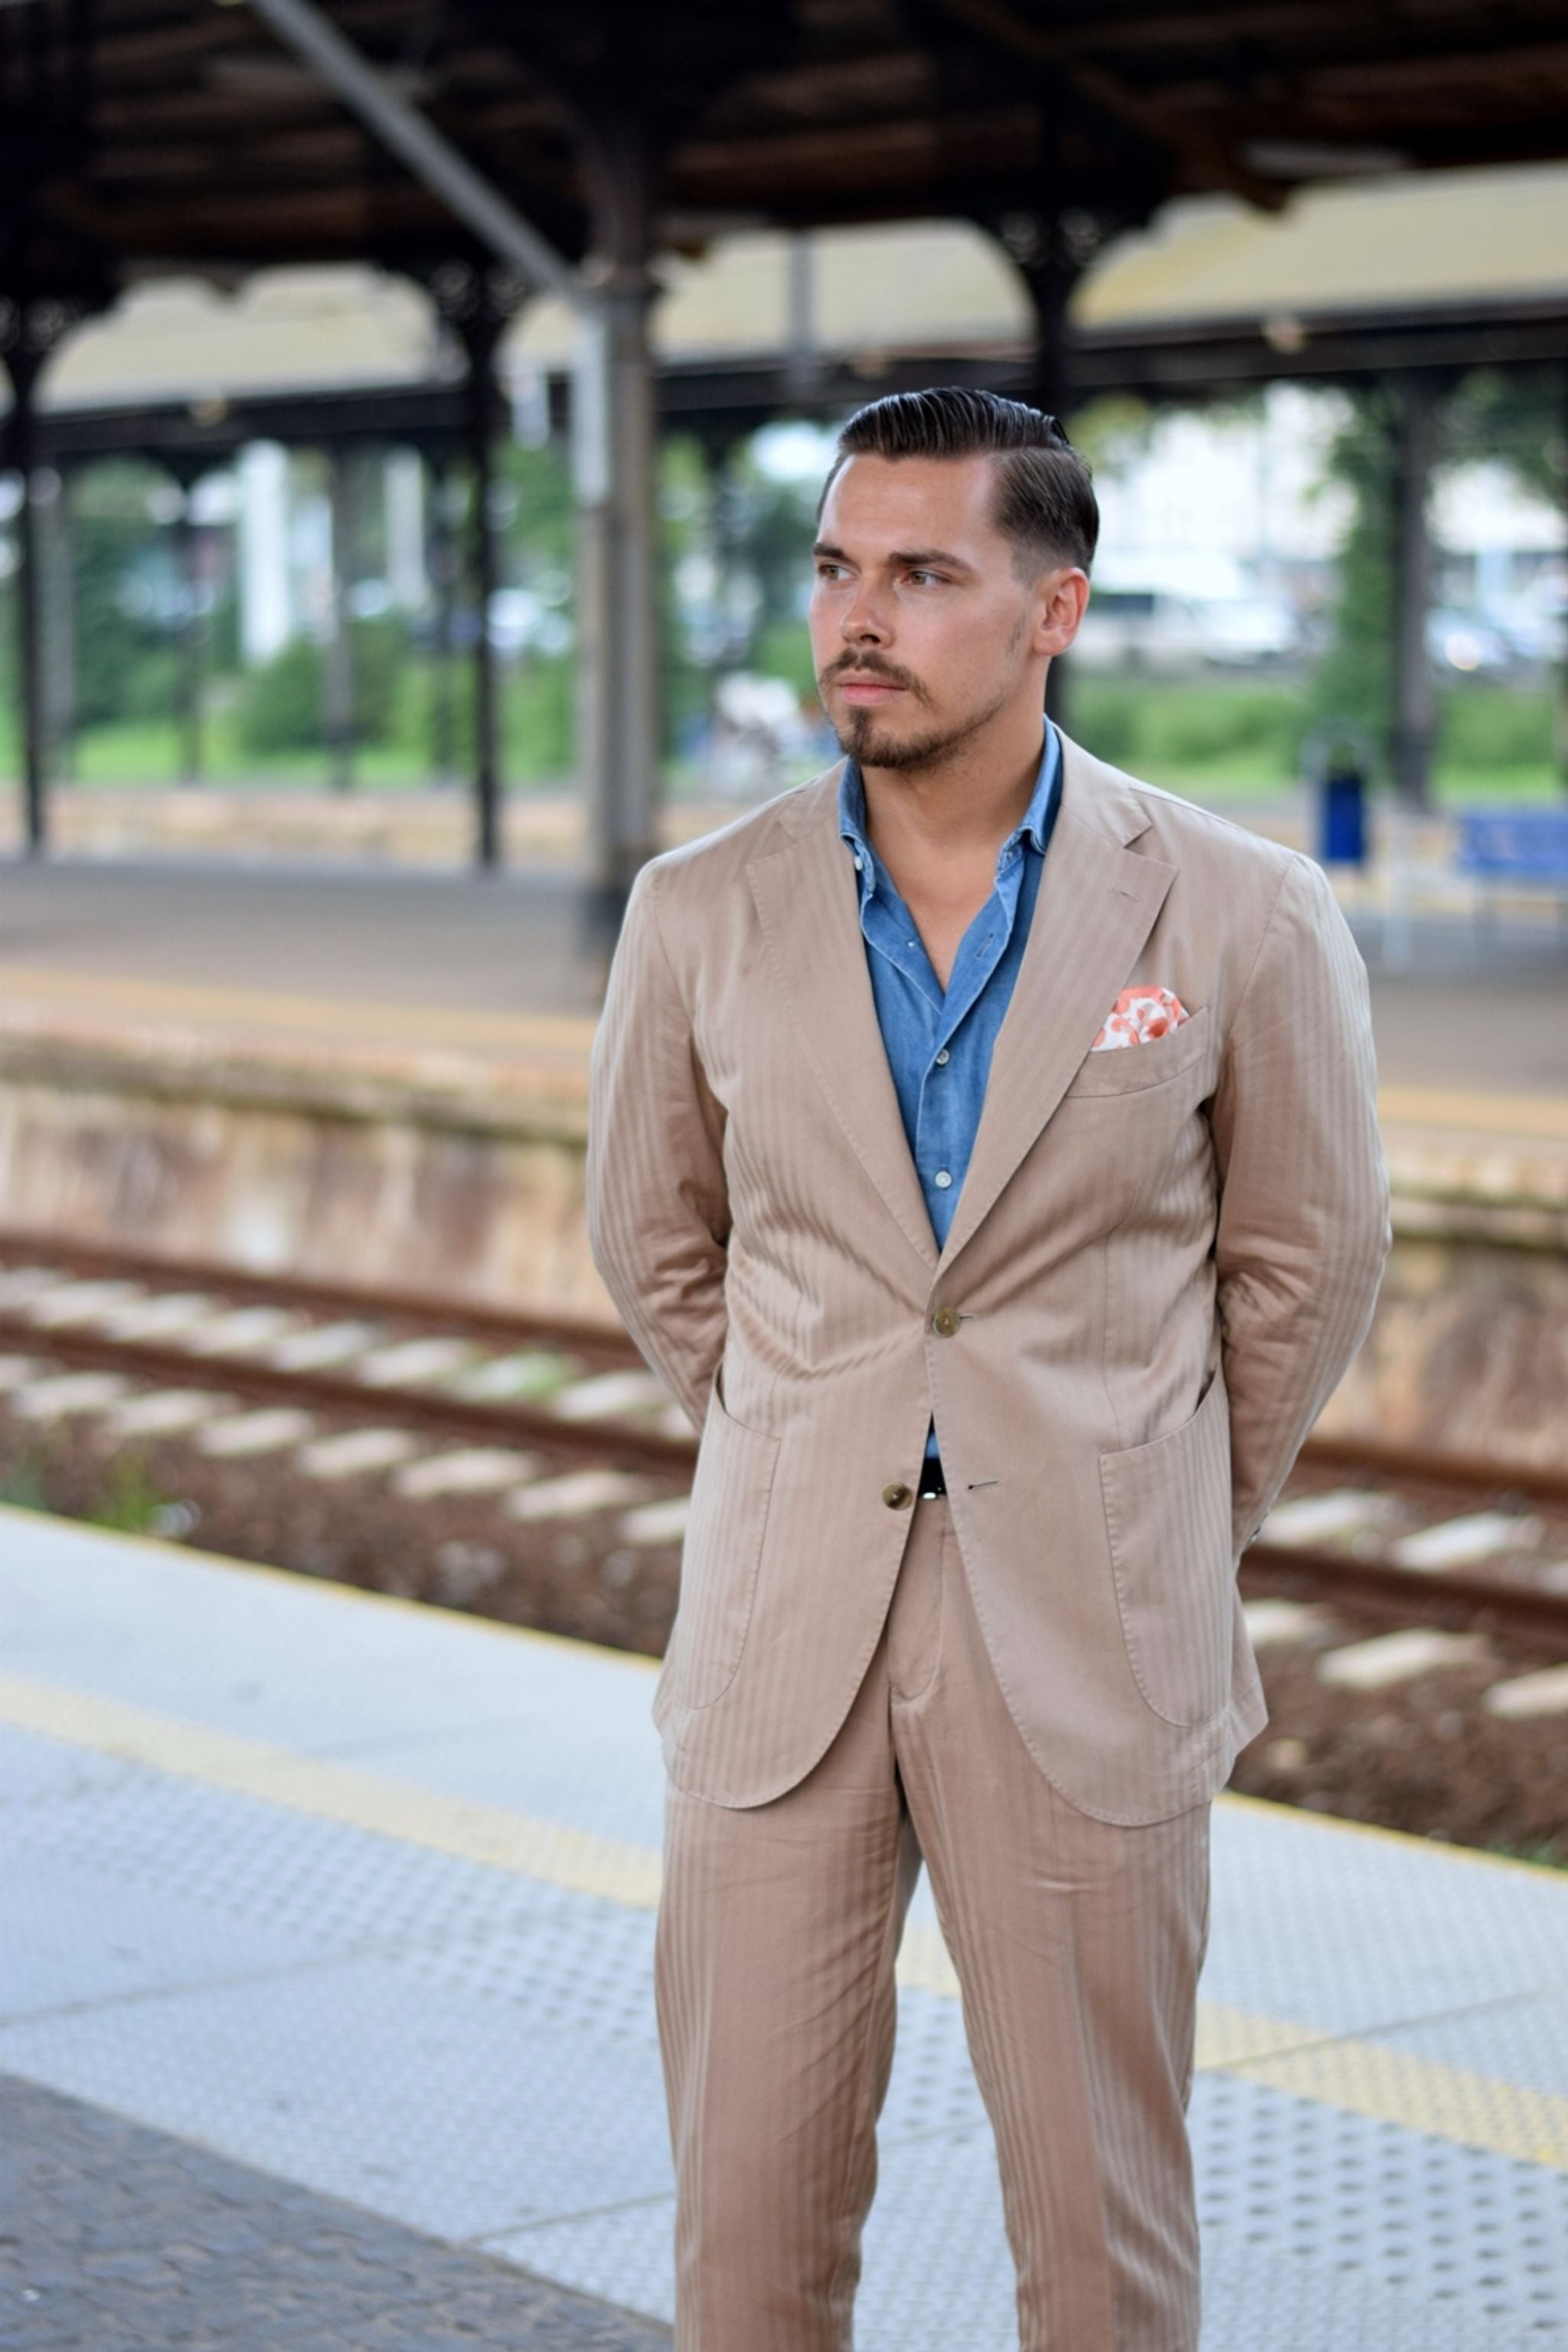 The cotton solaro suit - casual outfit with DLA denim shirt